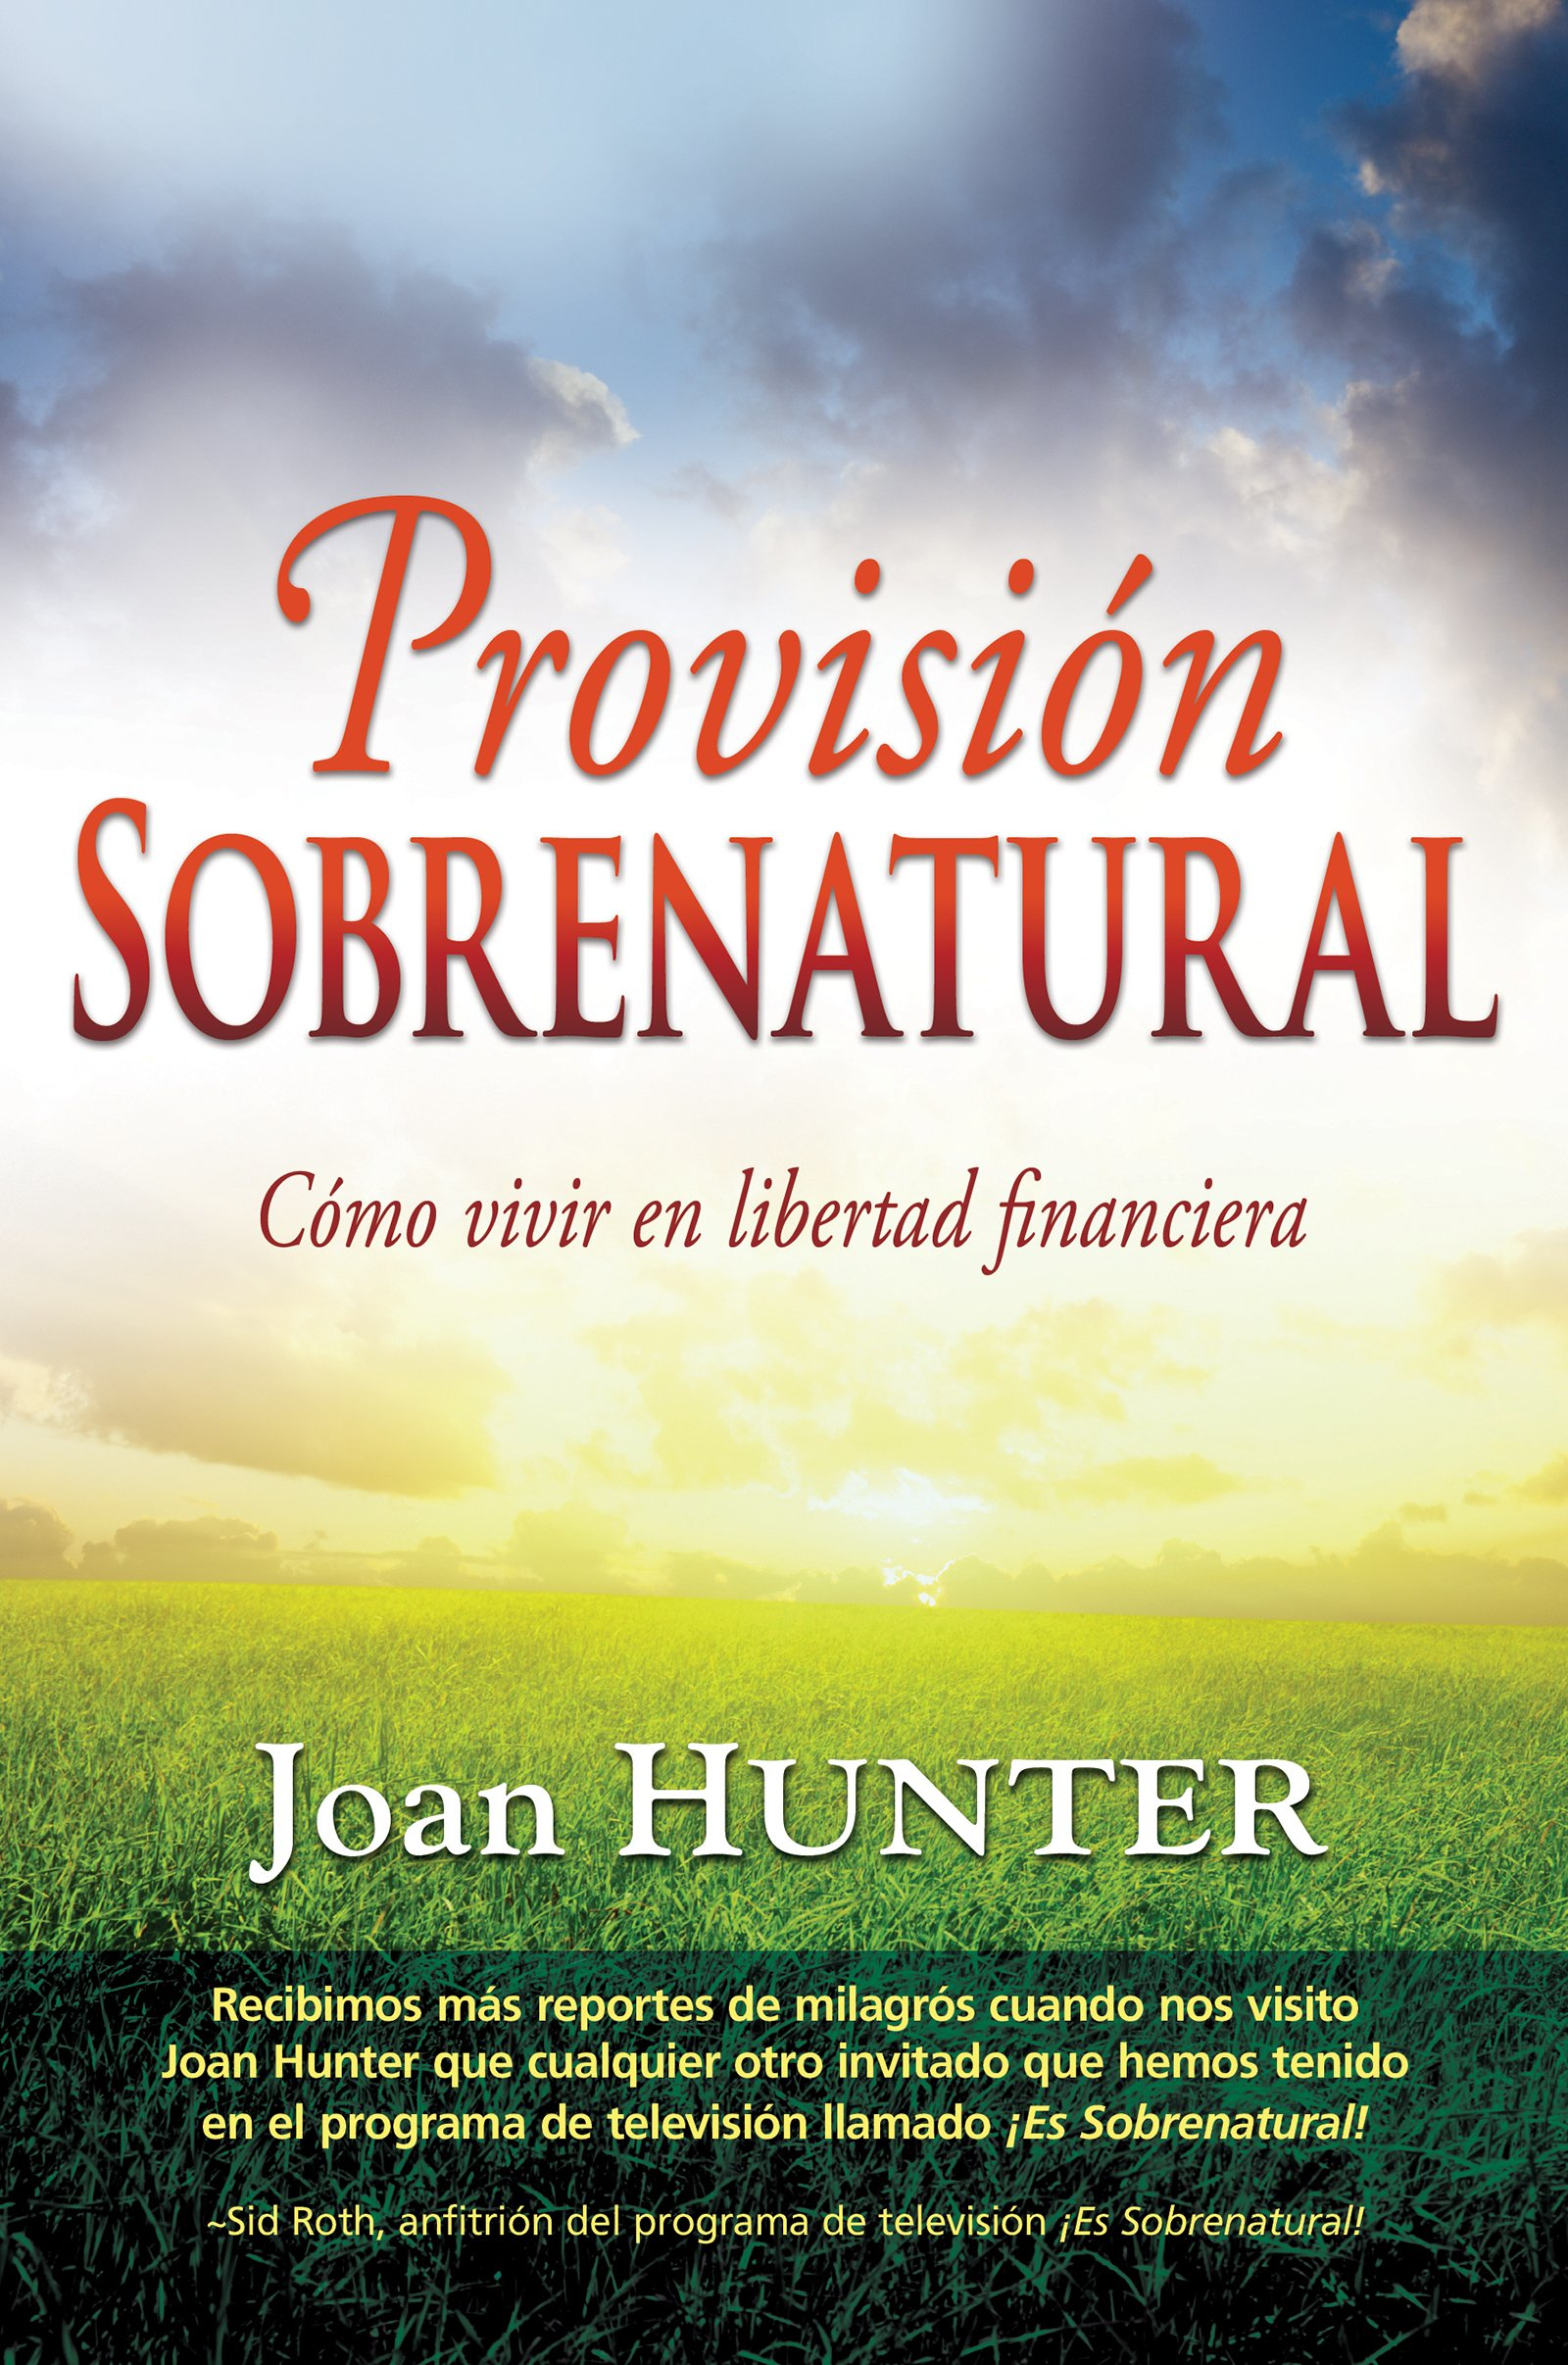 Provisión Sobrenatural: Cómo Vivir En Libertad Financiera: Amazon.es: Joan Hunter, Sid Roth: Libros